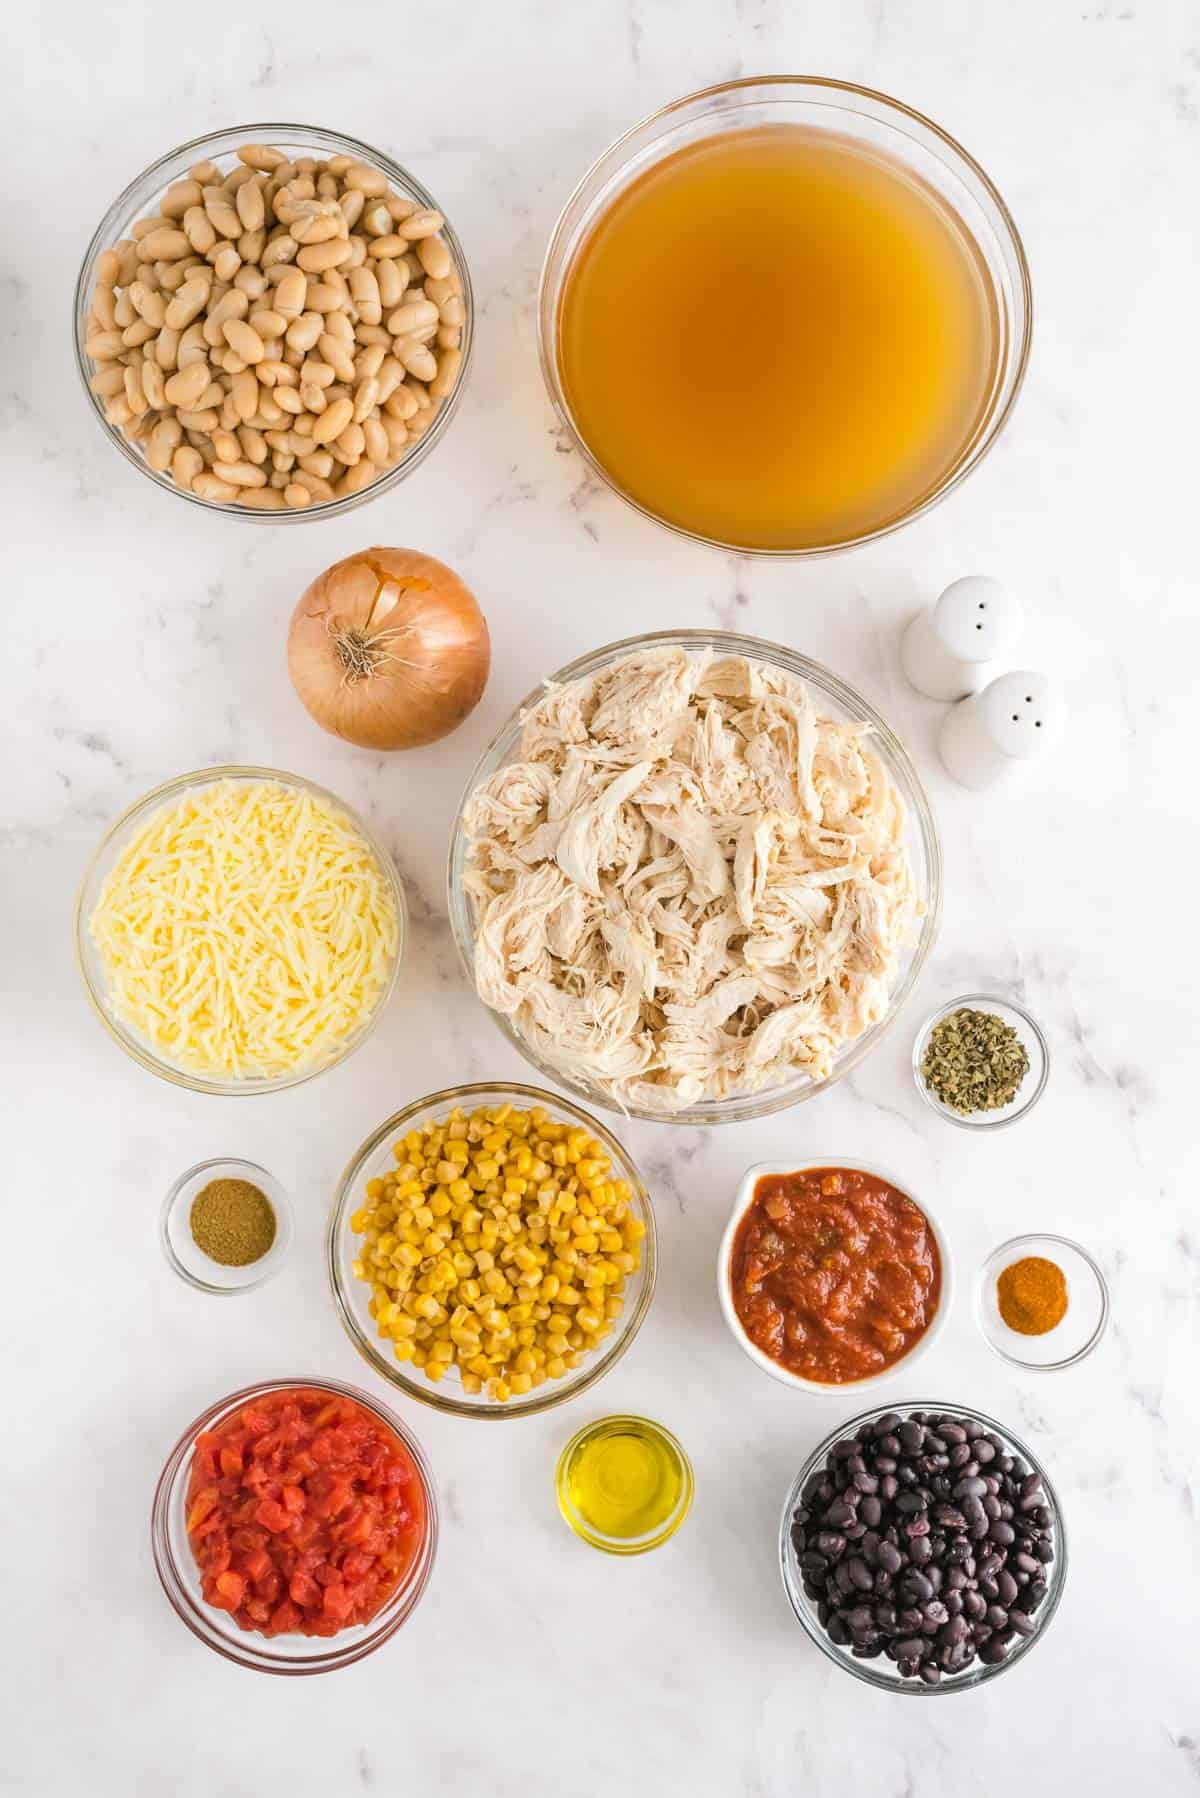 Overhead view of ingredients needed for white chili, all in glass bowls.